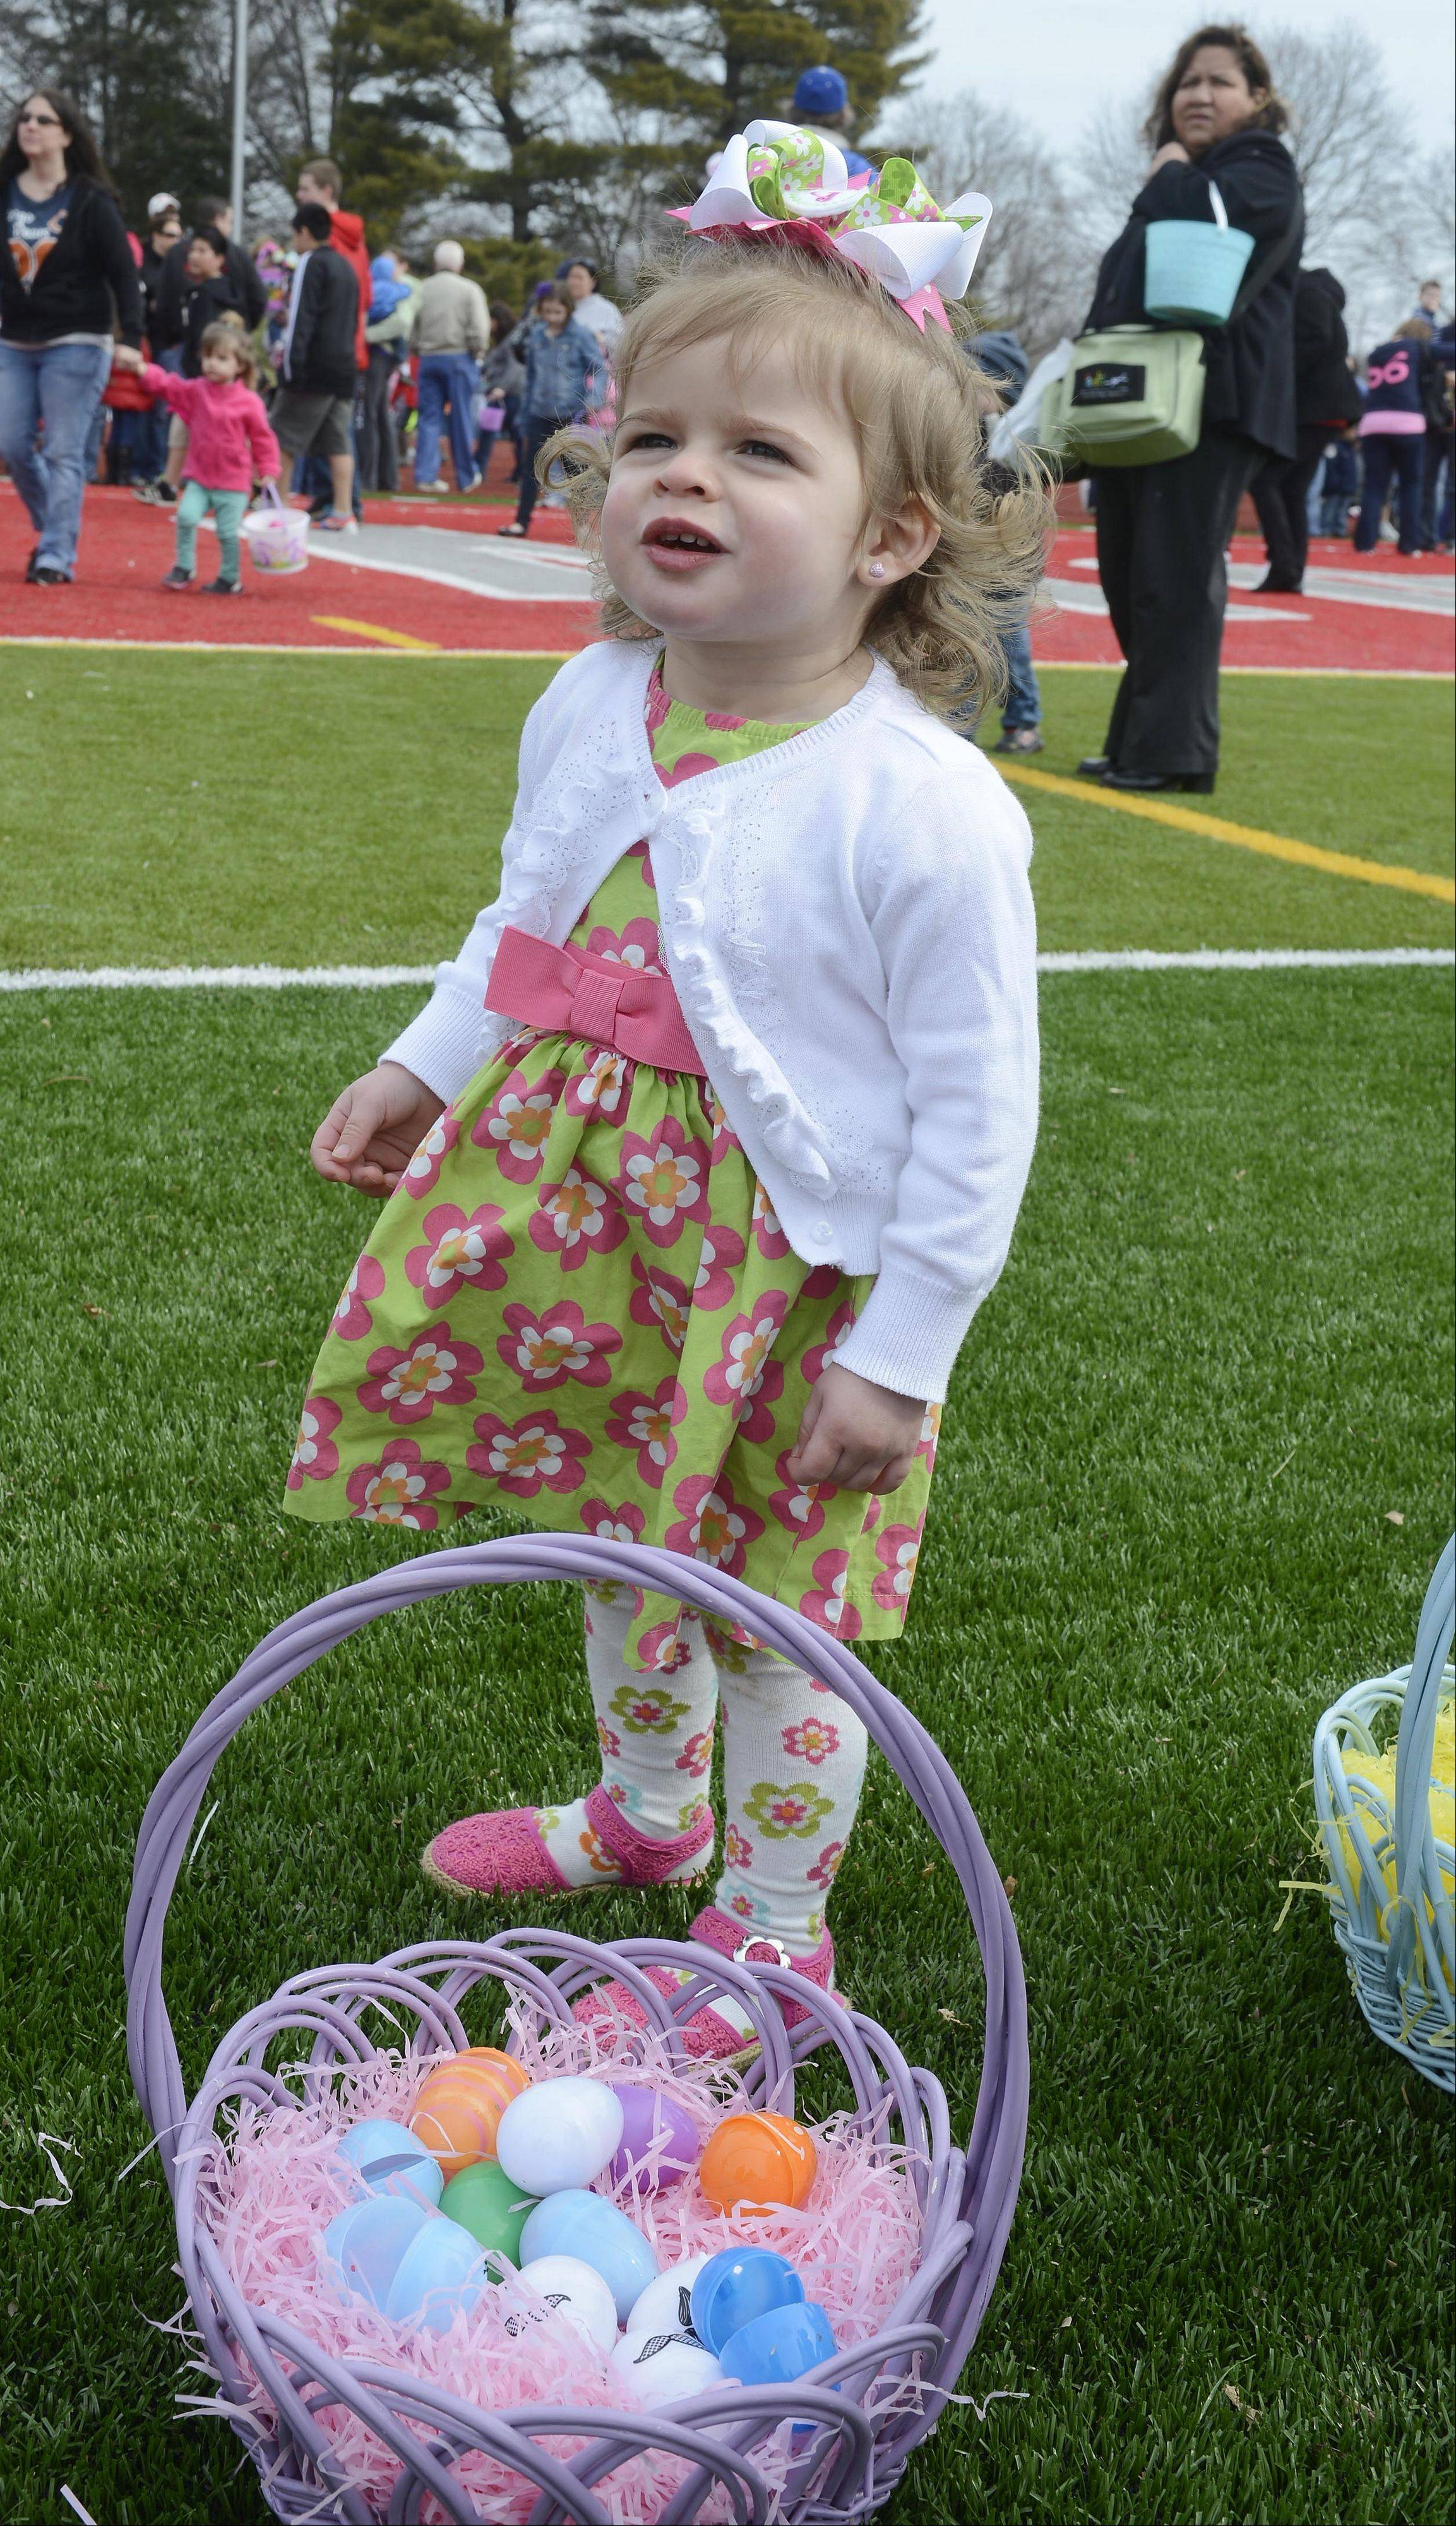 Gabriella Allen, age 20 months of West Chicago, has a basket of eggs during Saturday's Easter egg hunt at Mooseheart.